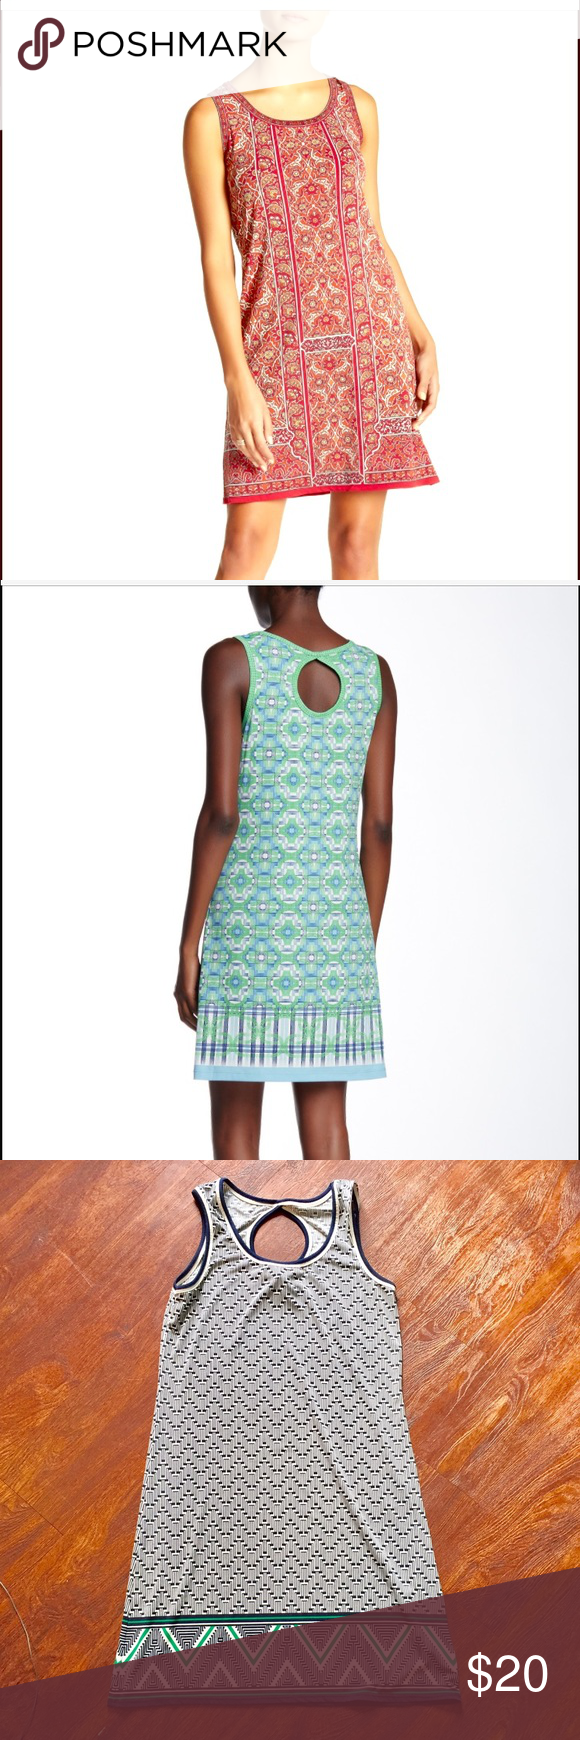 f0f083dada43b5 Max Studio printed keyhole back dress EXCELLENT used condition, worn once,  keyhole tank dress from Max Studio! Stock photos are just to show fit, ...